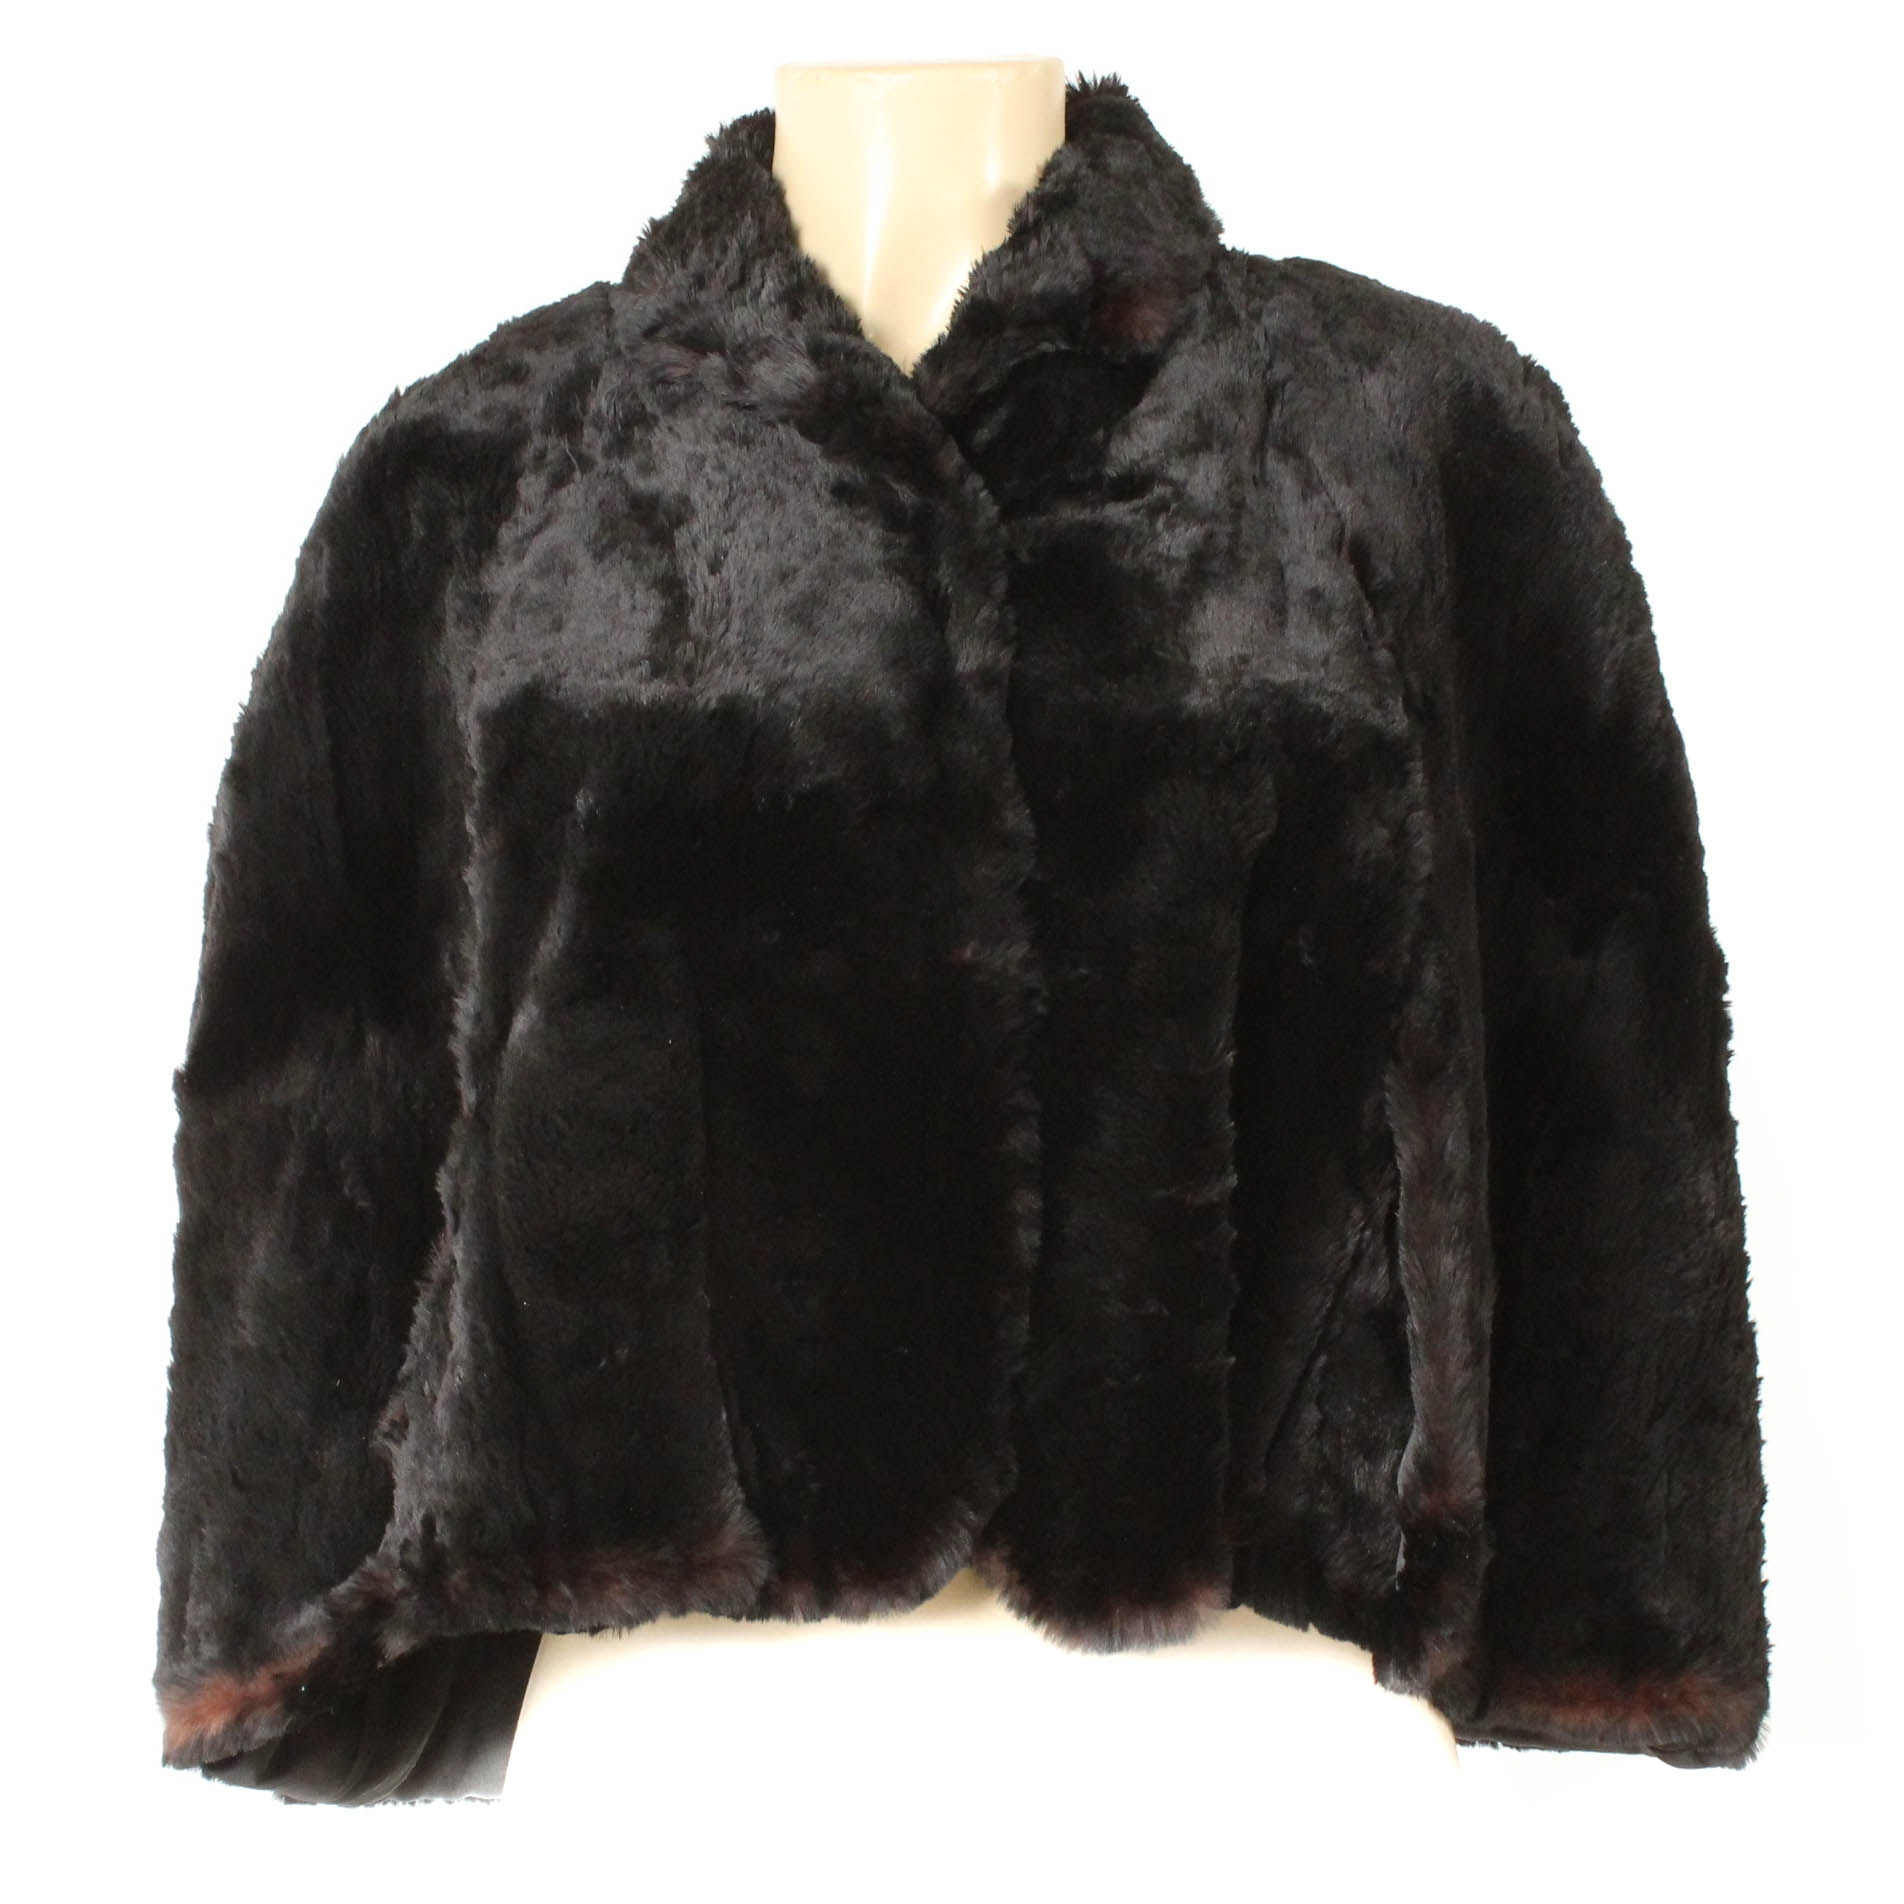 Vintage Mastercraft Dyed Black Rabbit Fur Capelet